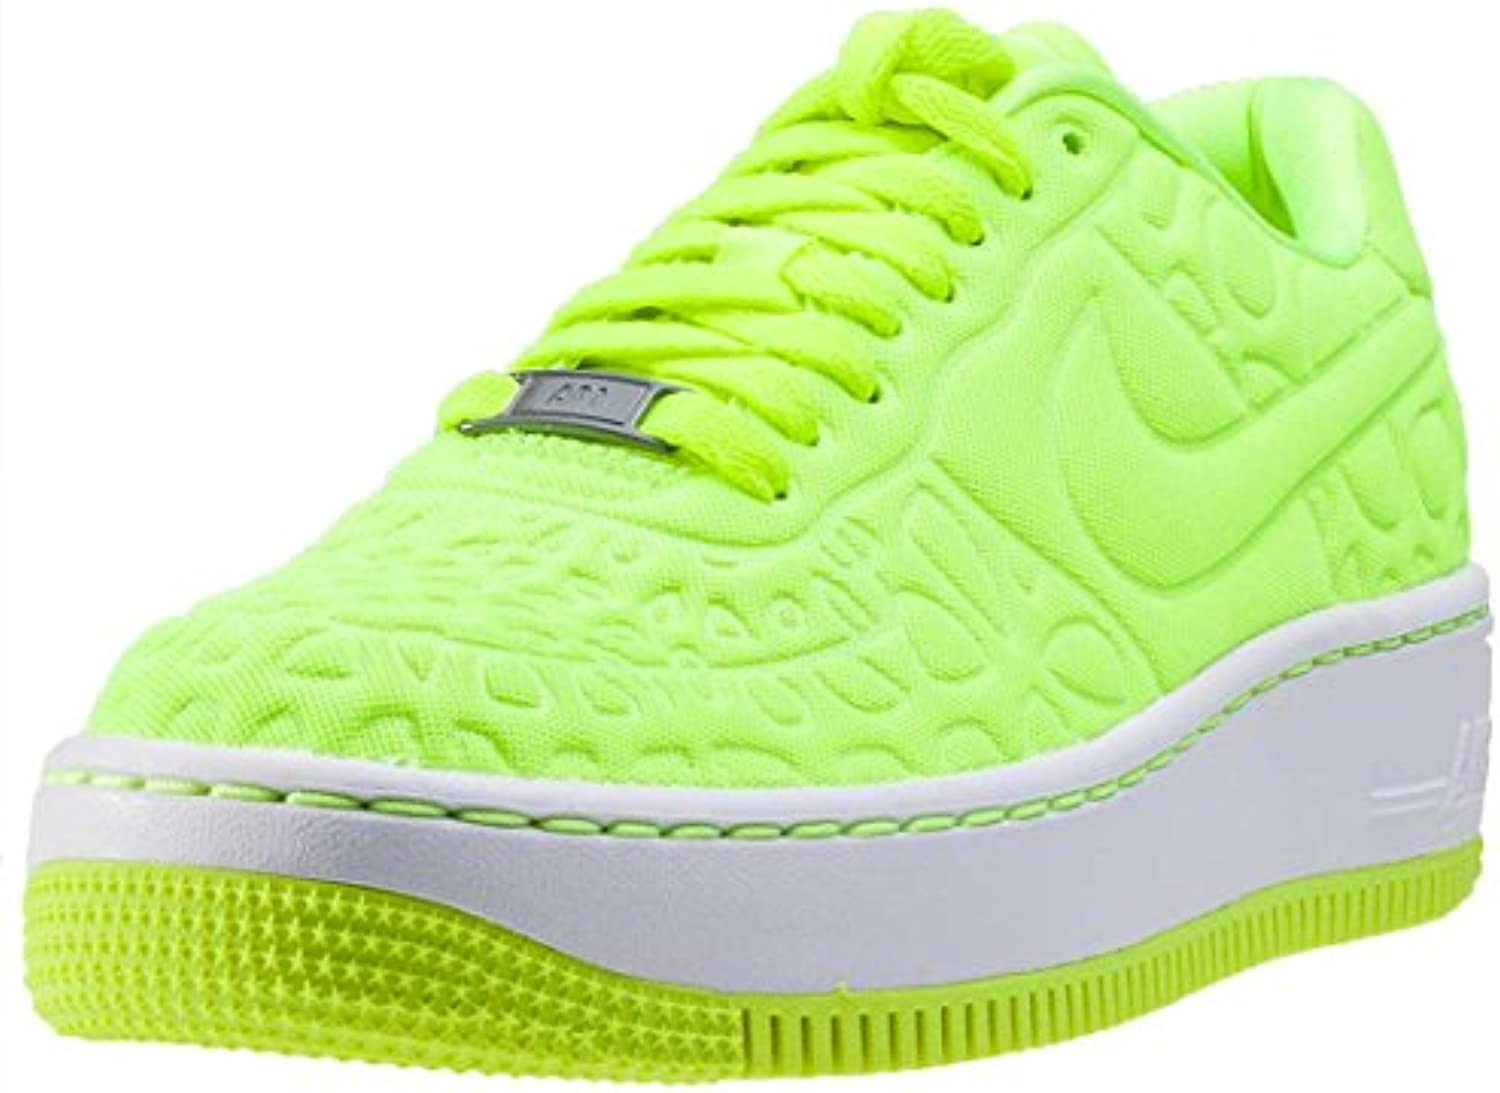 nike nike nike woHommes  & eacute; conditionneHommes t 844877-700 chaussures b01lzp5iky parent 2e2028